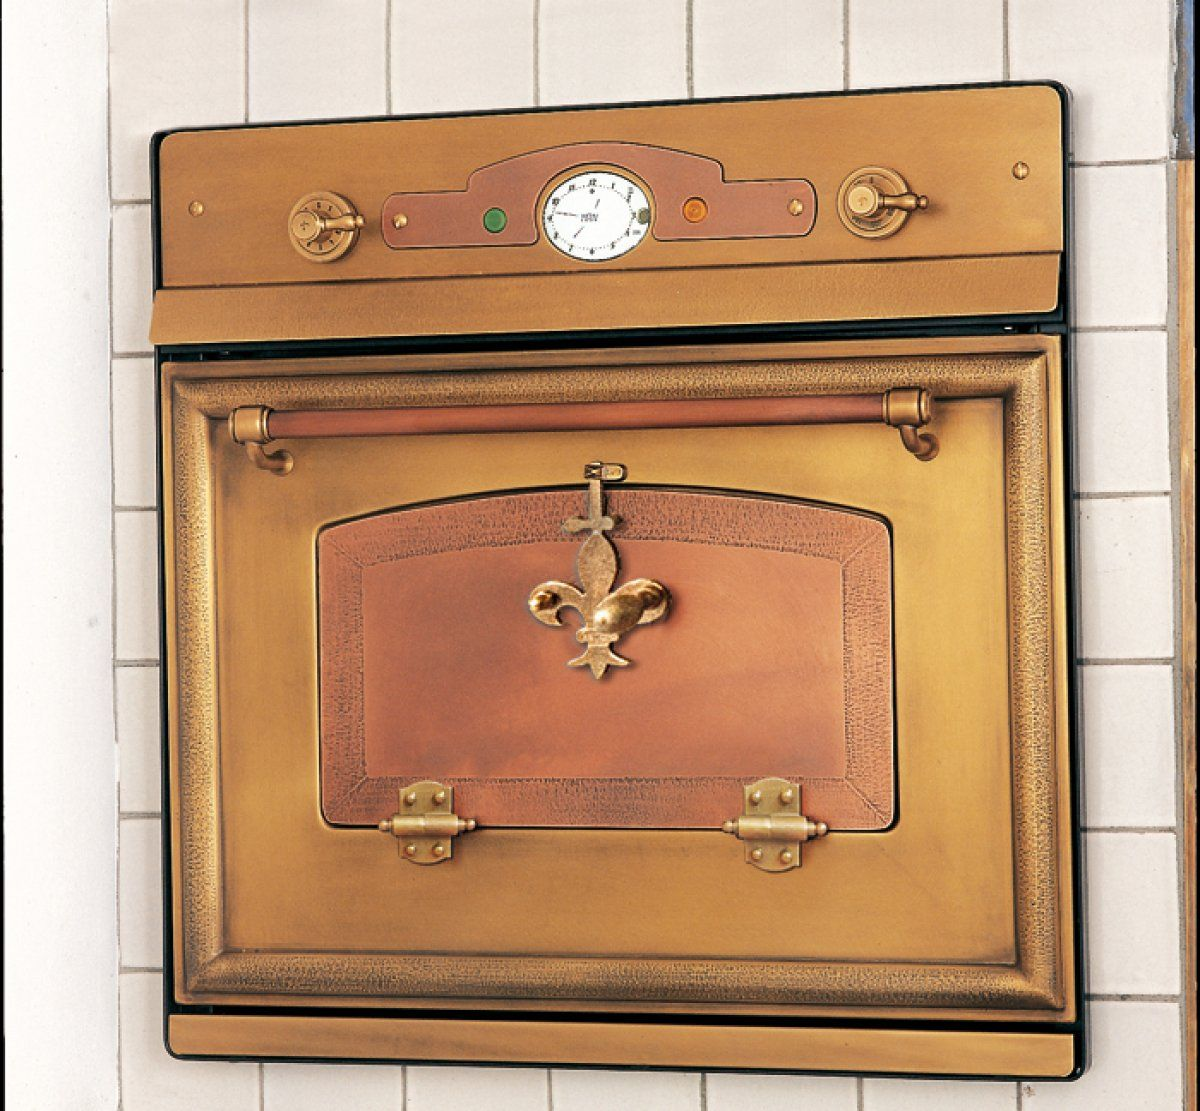 Forno Smeg Cortina Copper And Brass Oven Is It Possible To Be In Love With